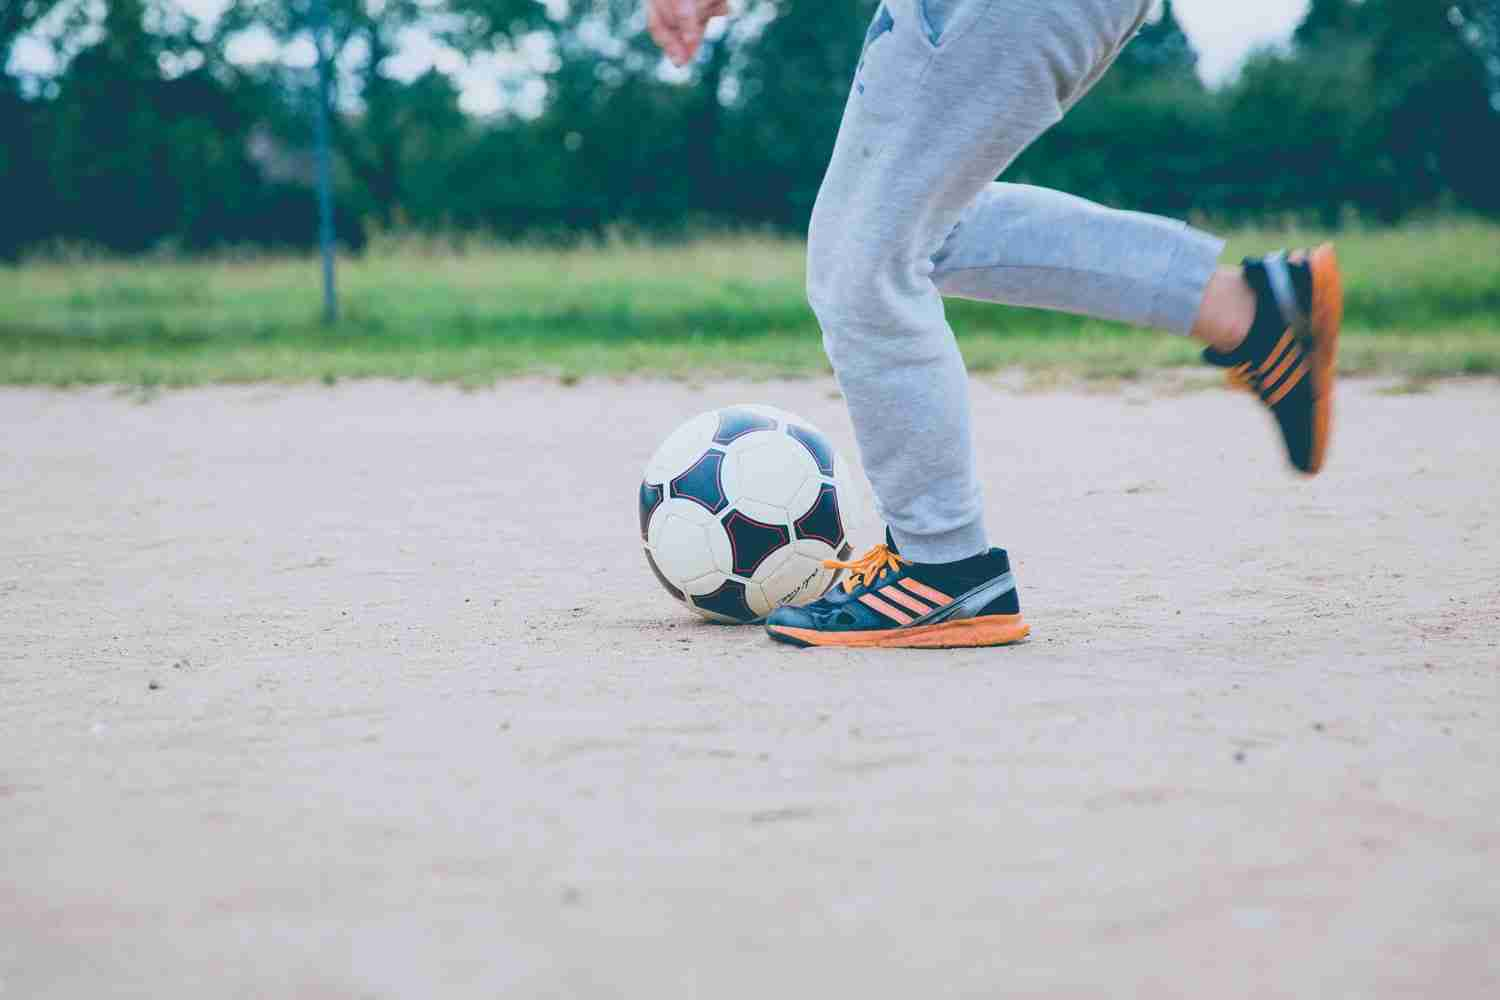 Kicking soccer ball to stay active as part of raising healthy kids